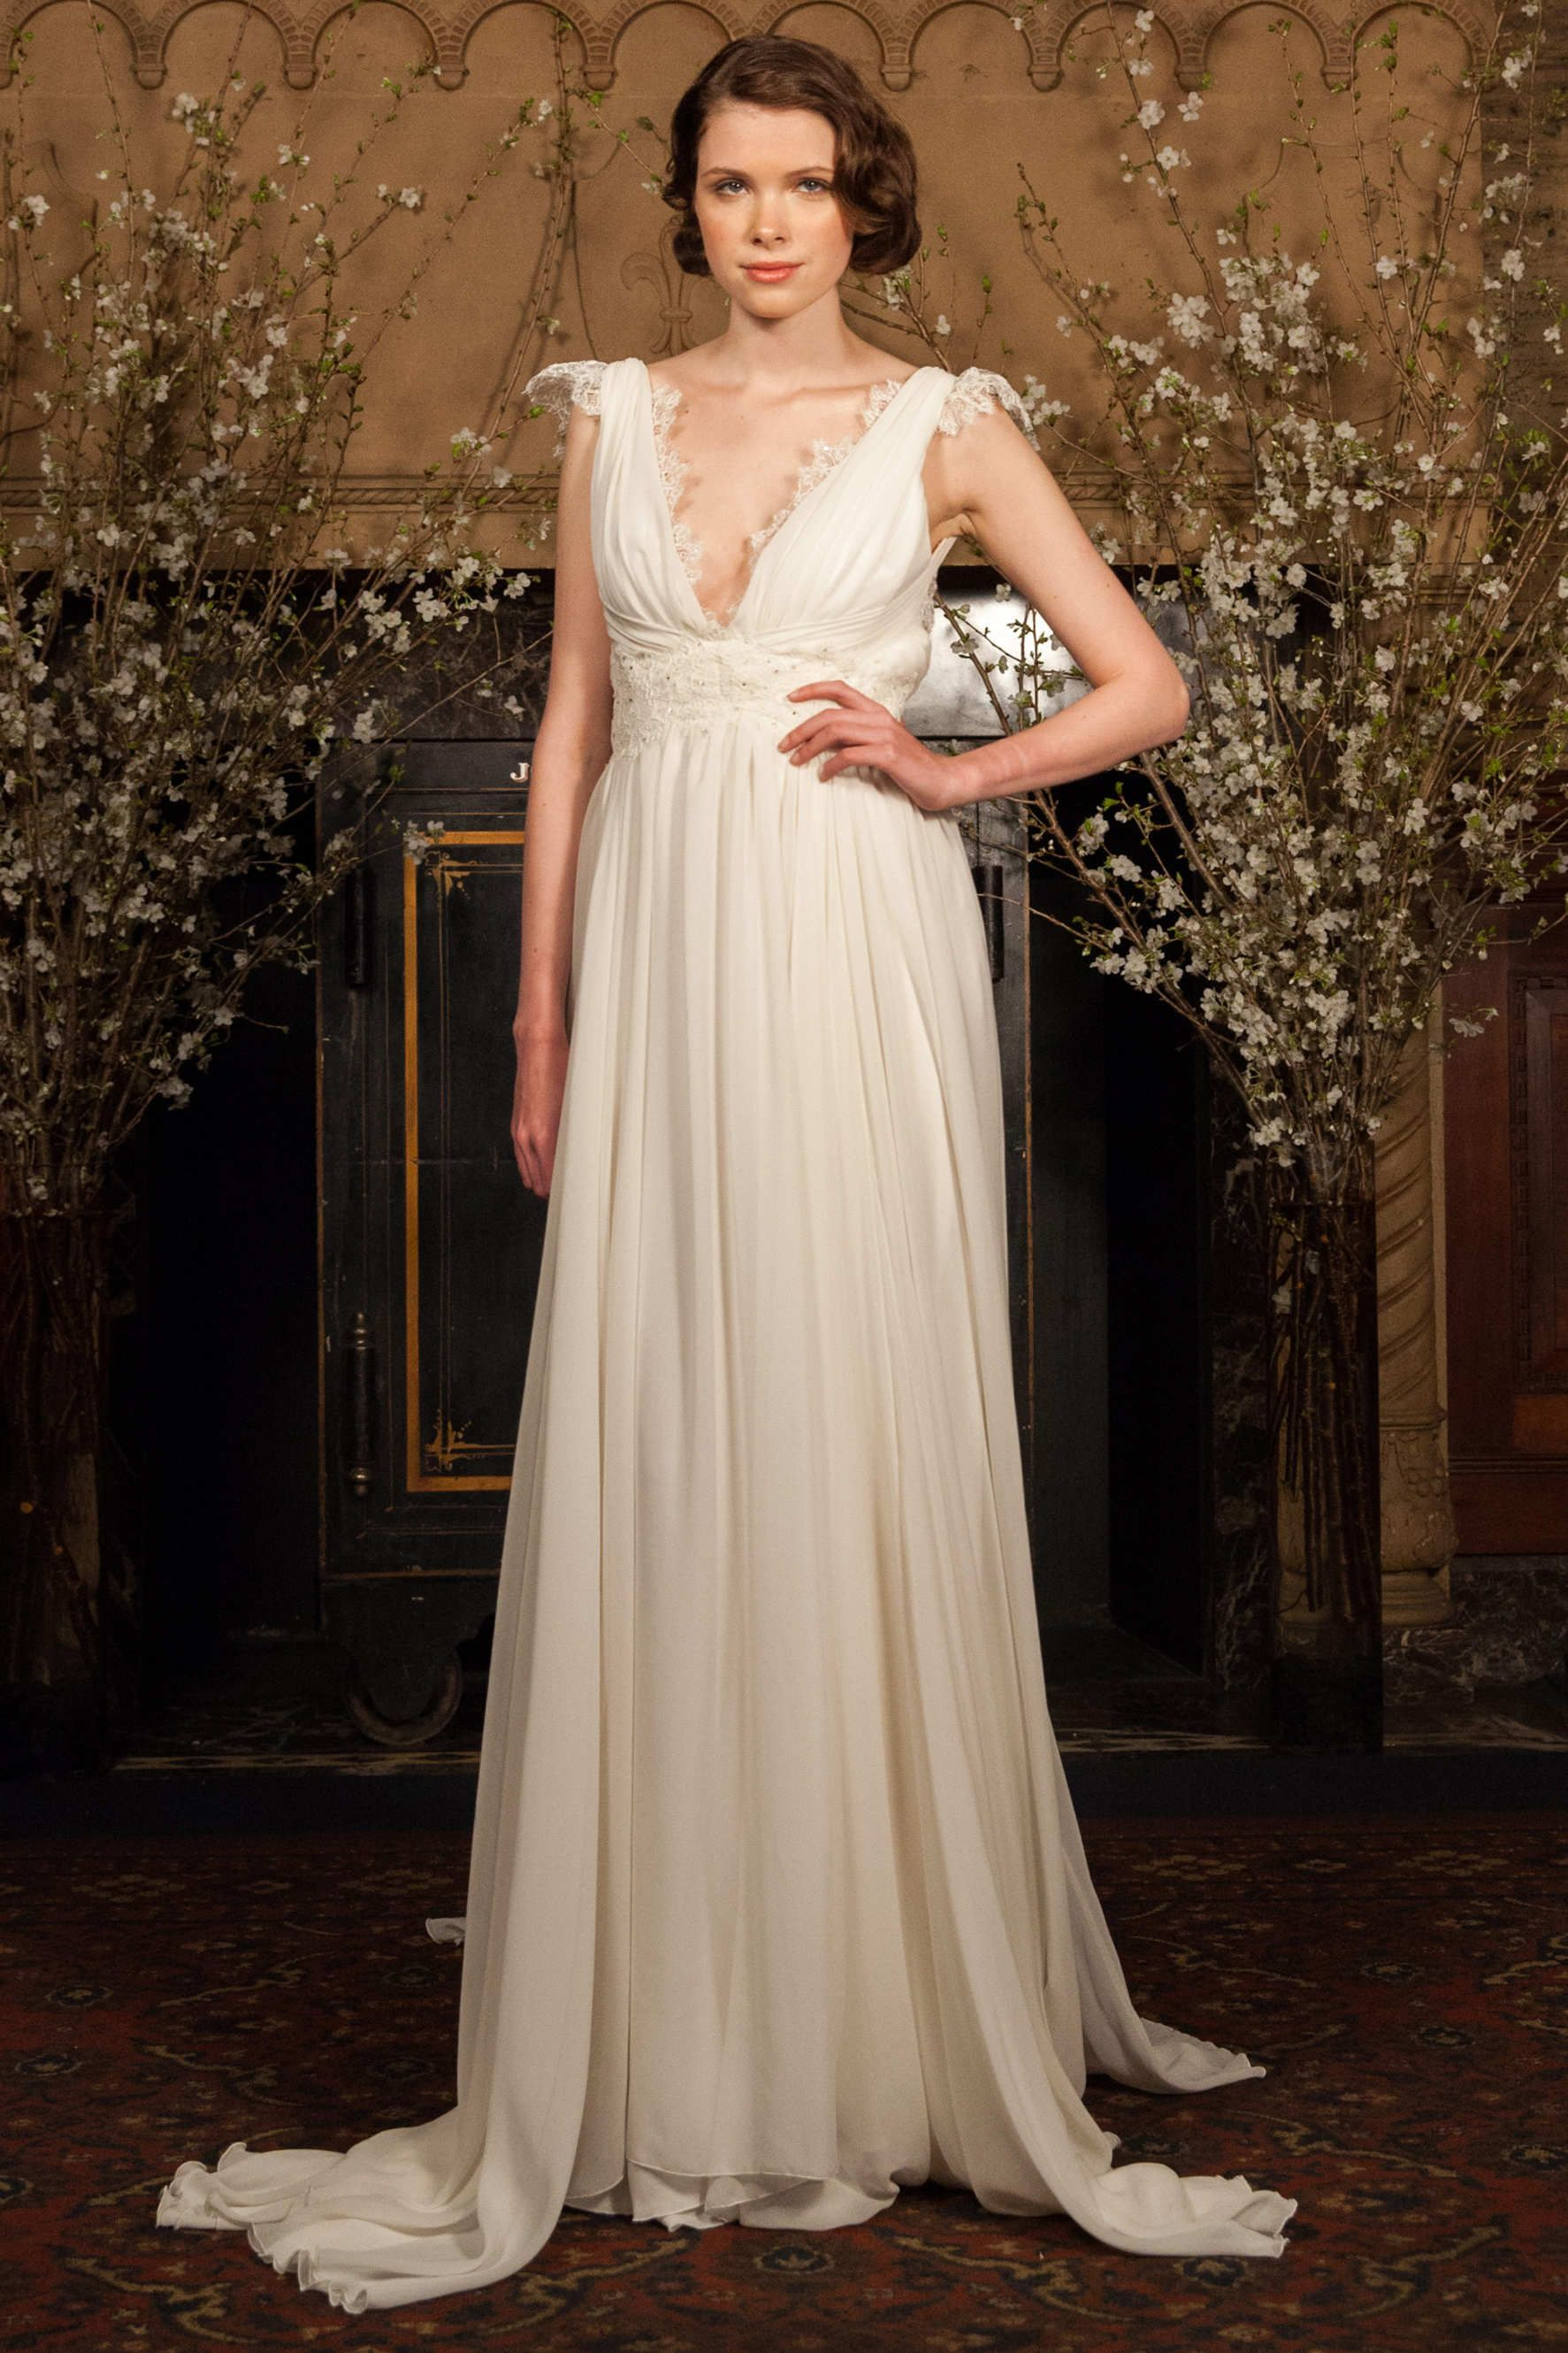 AUSTIN SCARLETT SPRING BRIDAL 2015 COLLECTION (With images